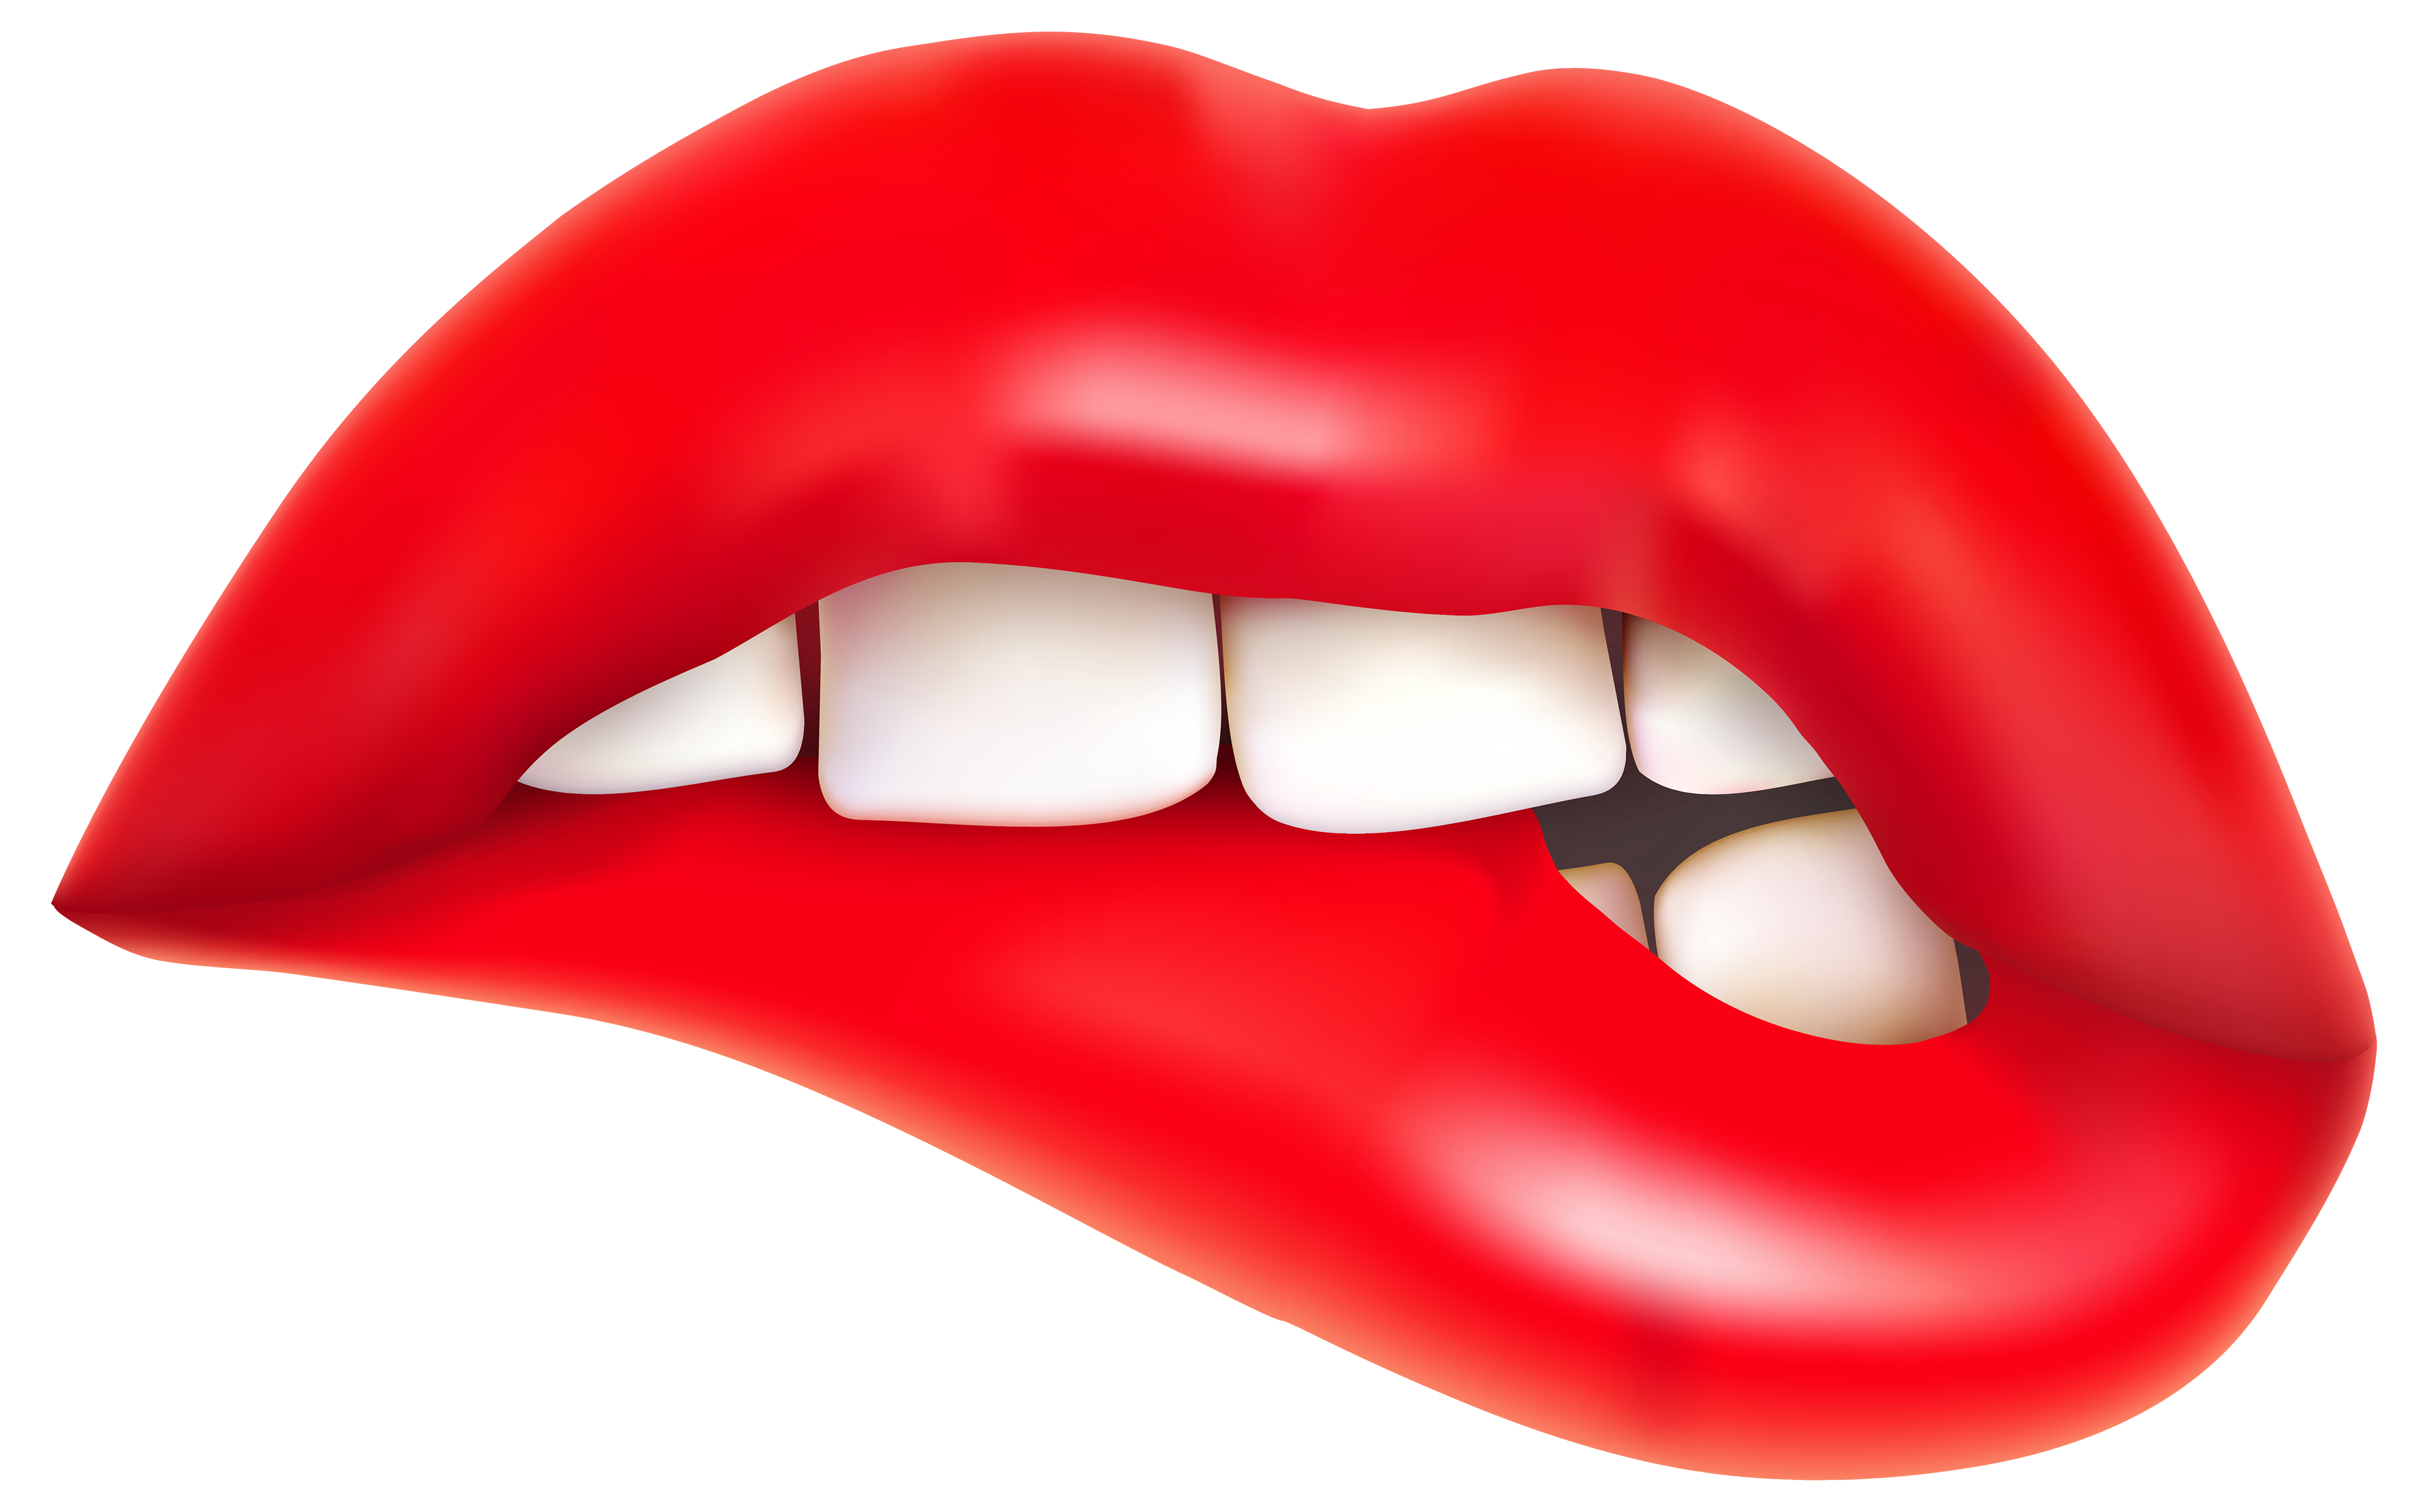 Lips clipart valentines. Png the best clipartpng